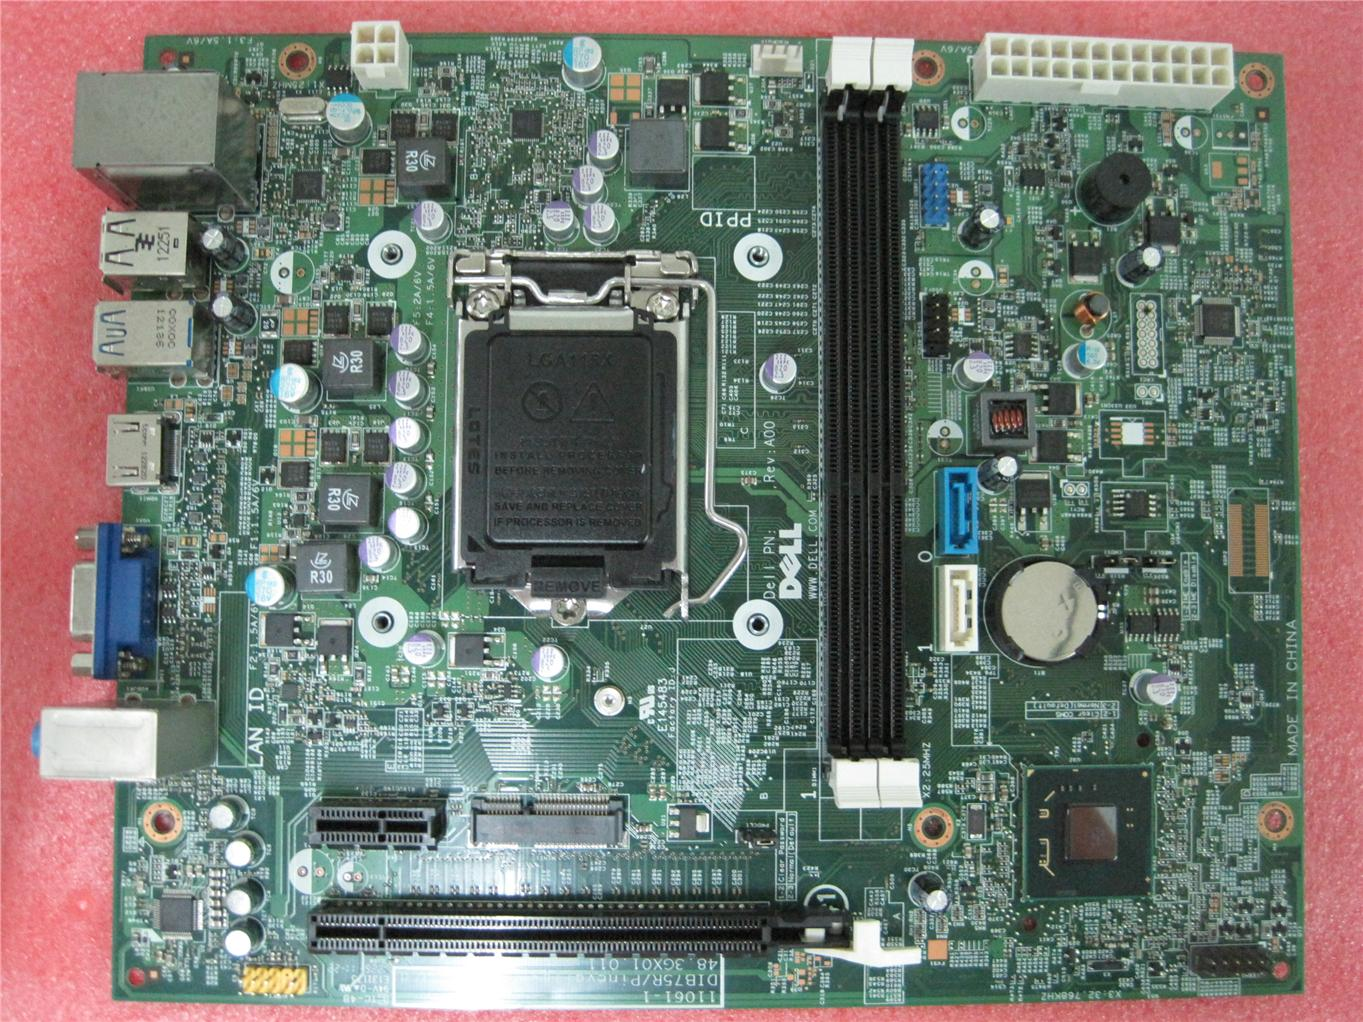 DELL Inspiron 660s Vostro 270s Motherboard 478VN XFWHV DIB75R PS0822